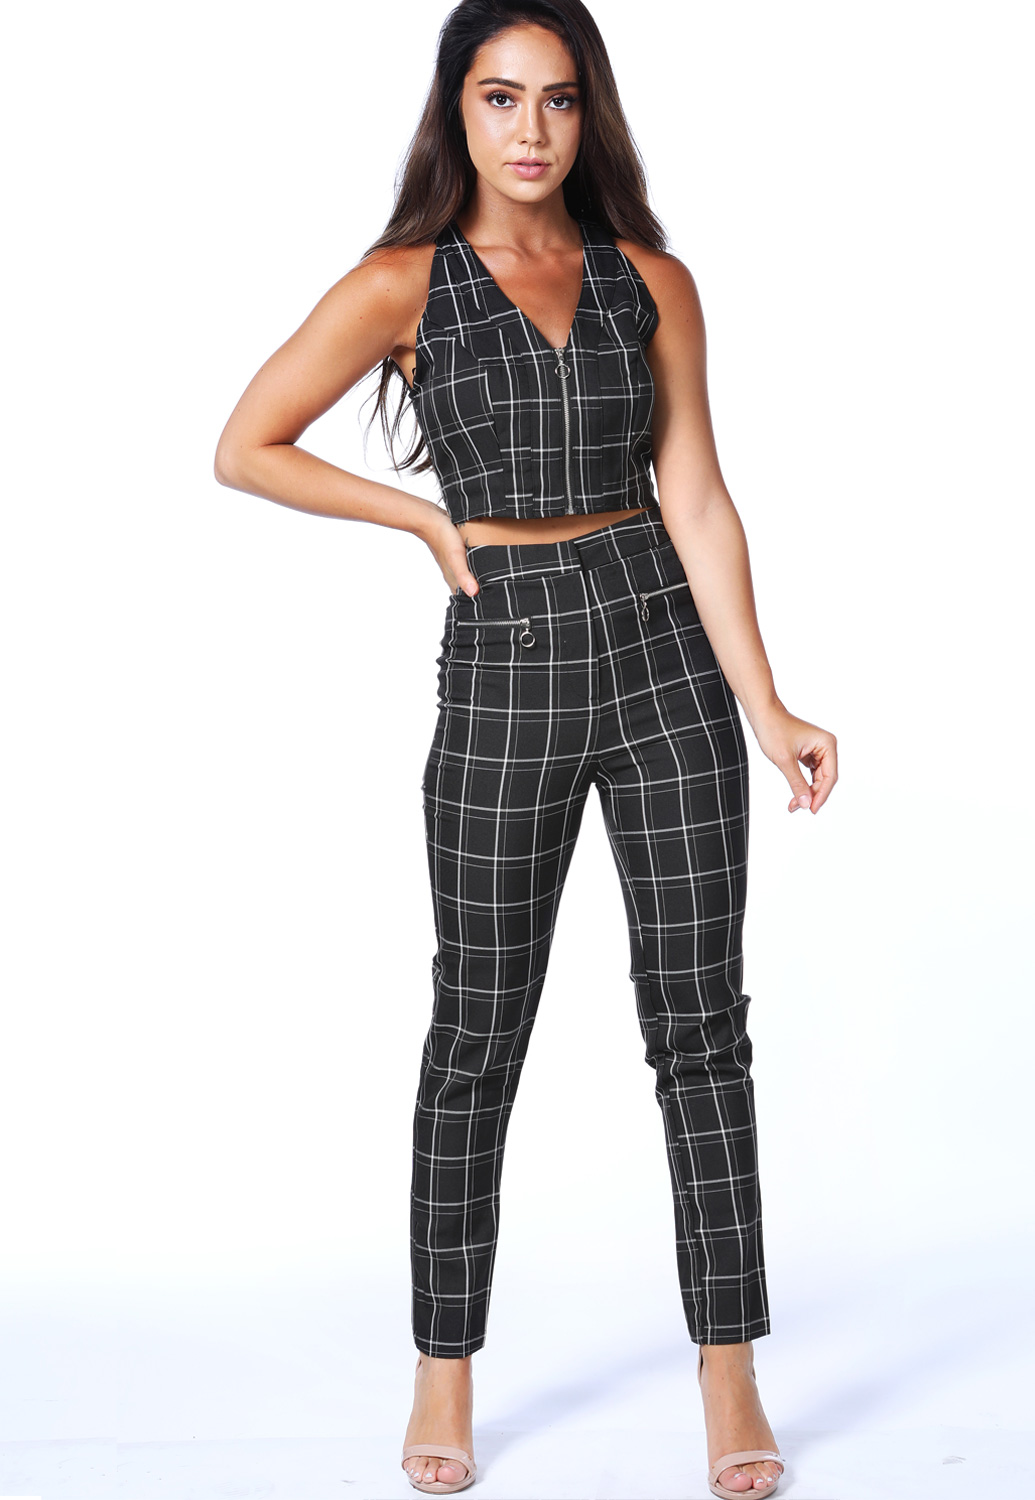 Plaid Dressy Pants